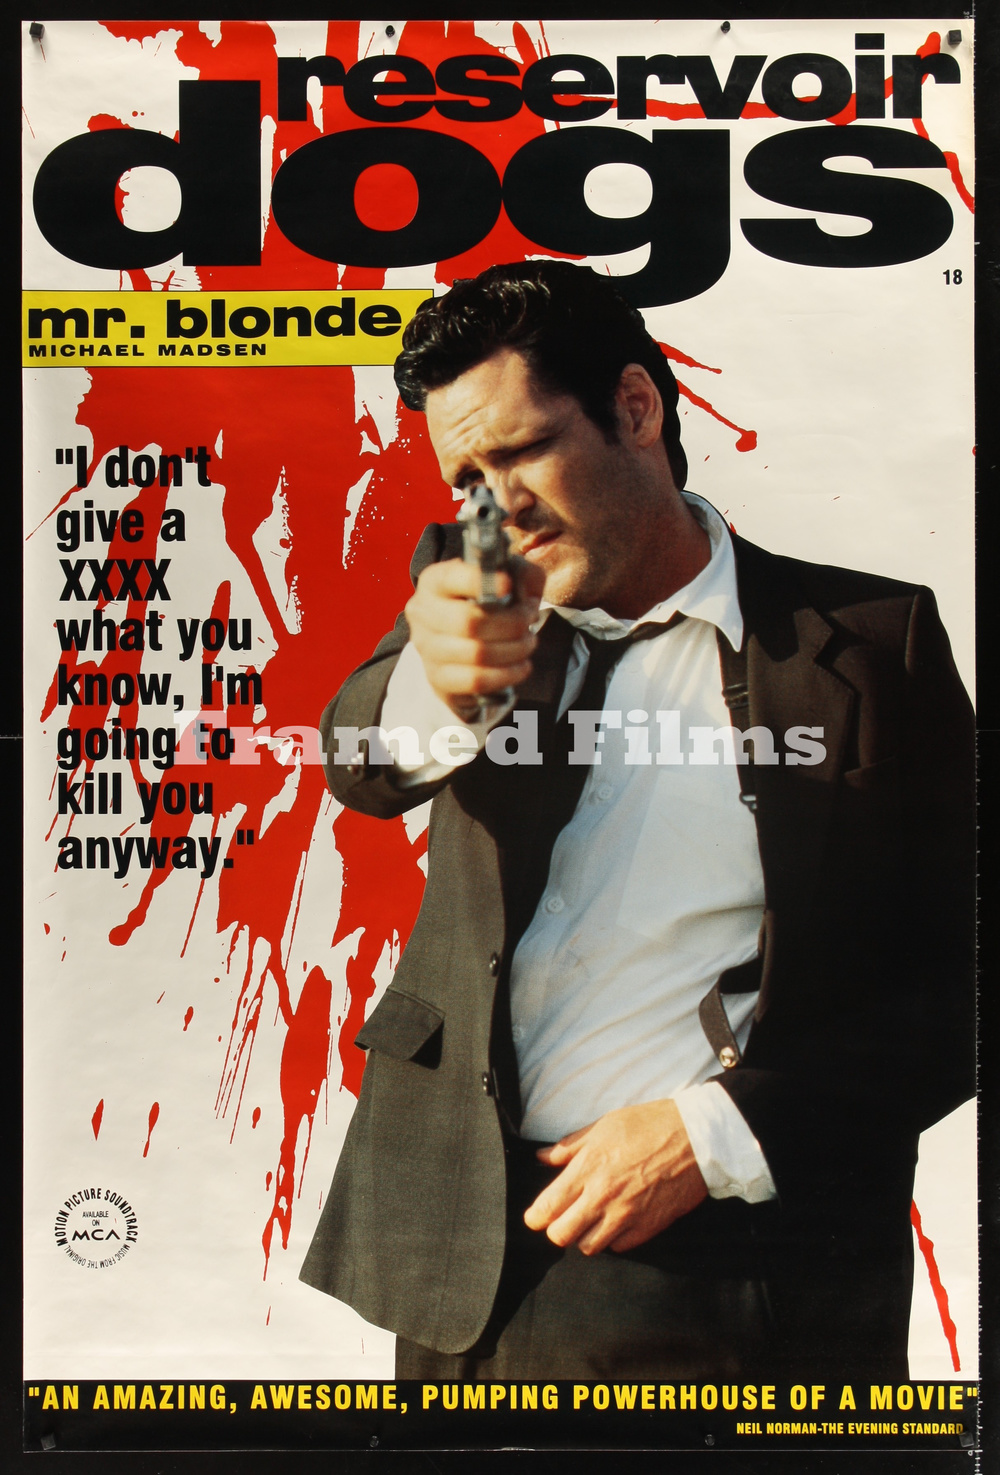 english_40x60_reservoir_dogs_mr_blonde_style_JC04724_L.jpg